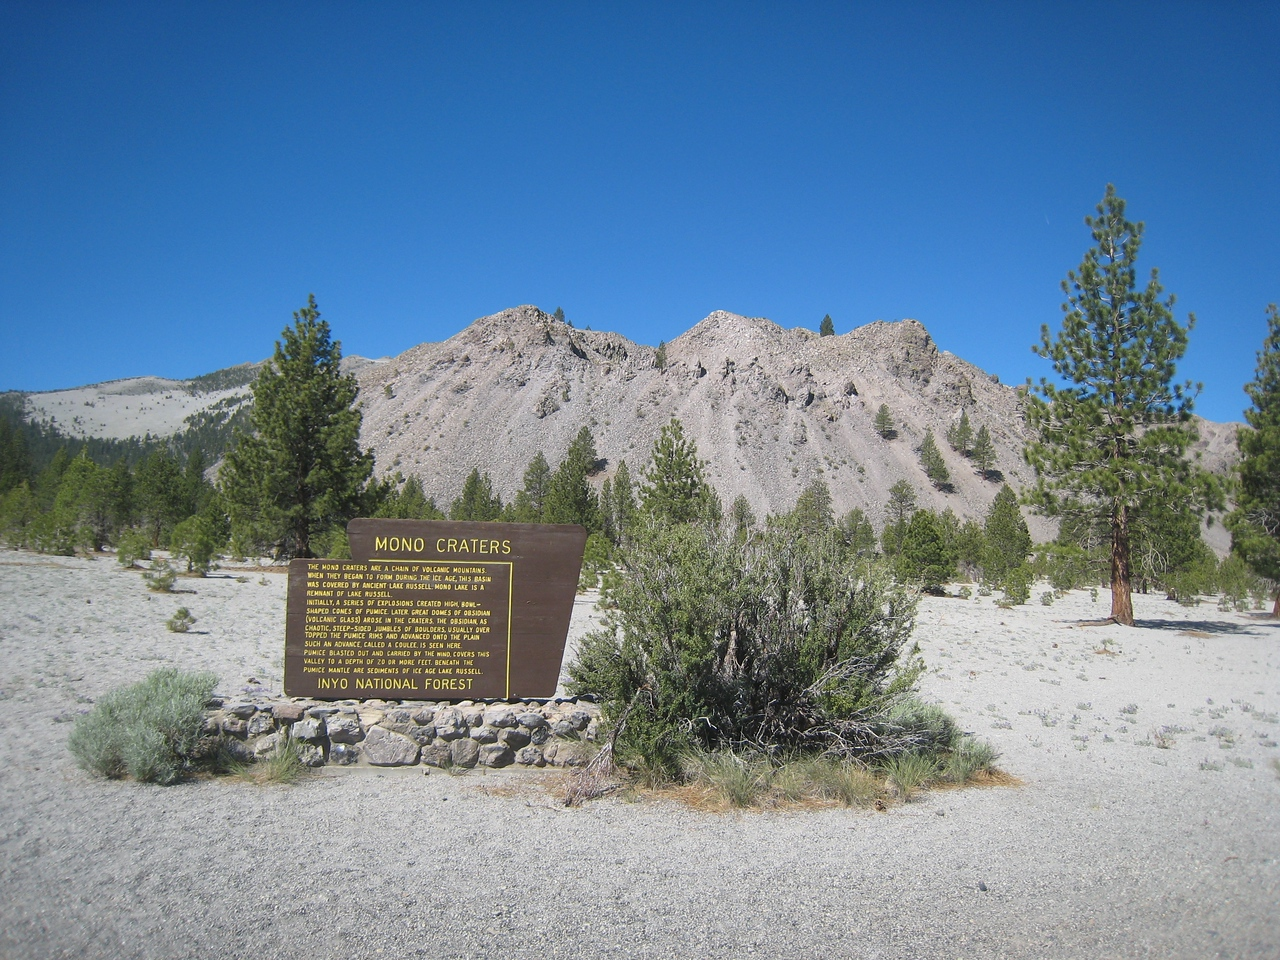 A view of the Mono Craters as described in the sign.